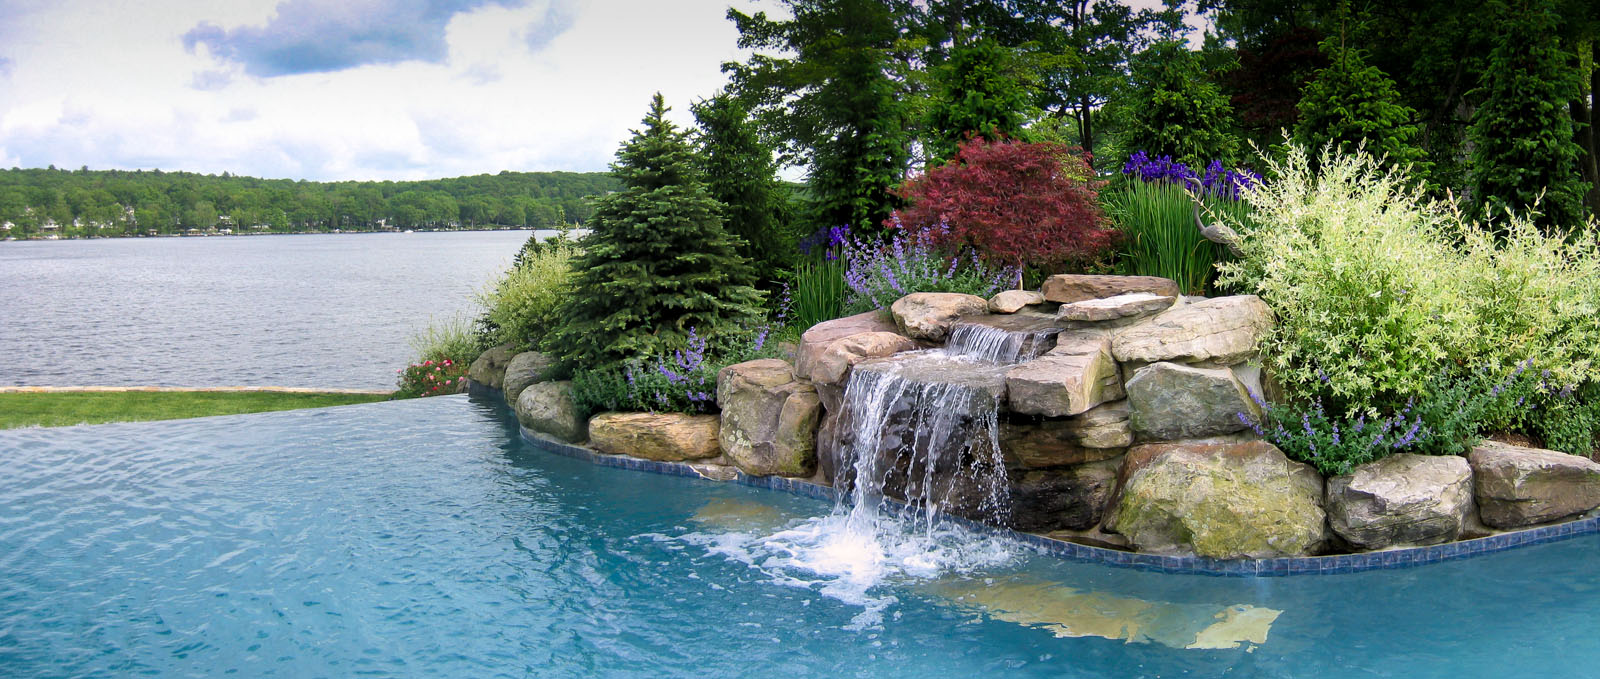 Walls archives clc landscape design for Pool design inc bordentown nj